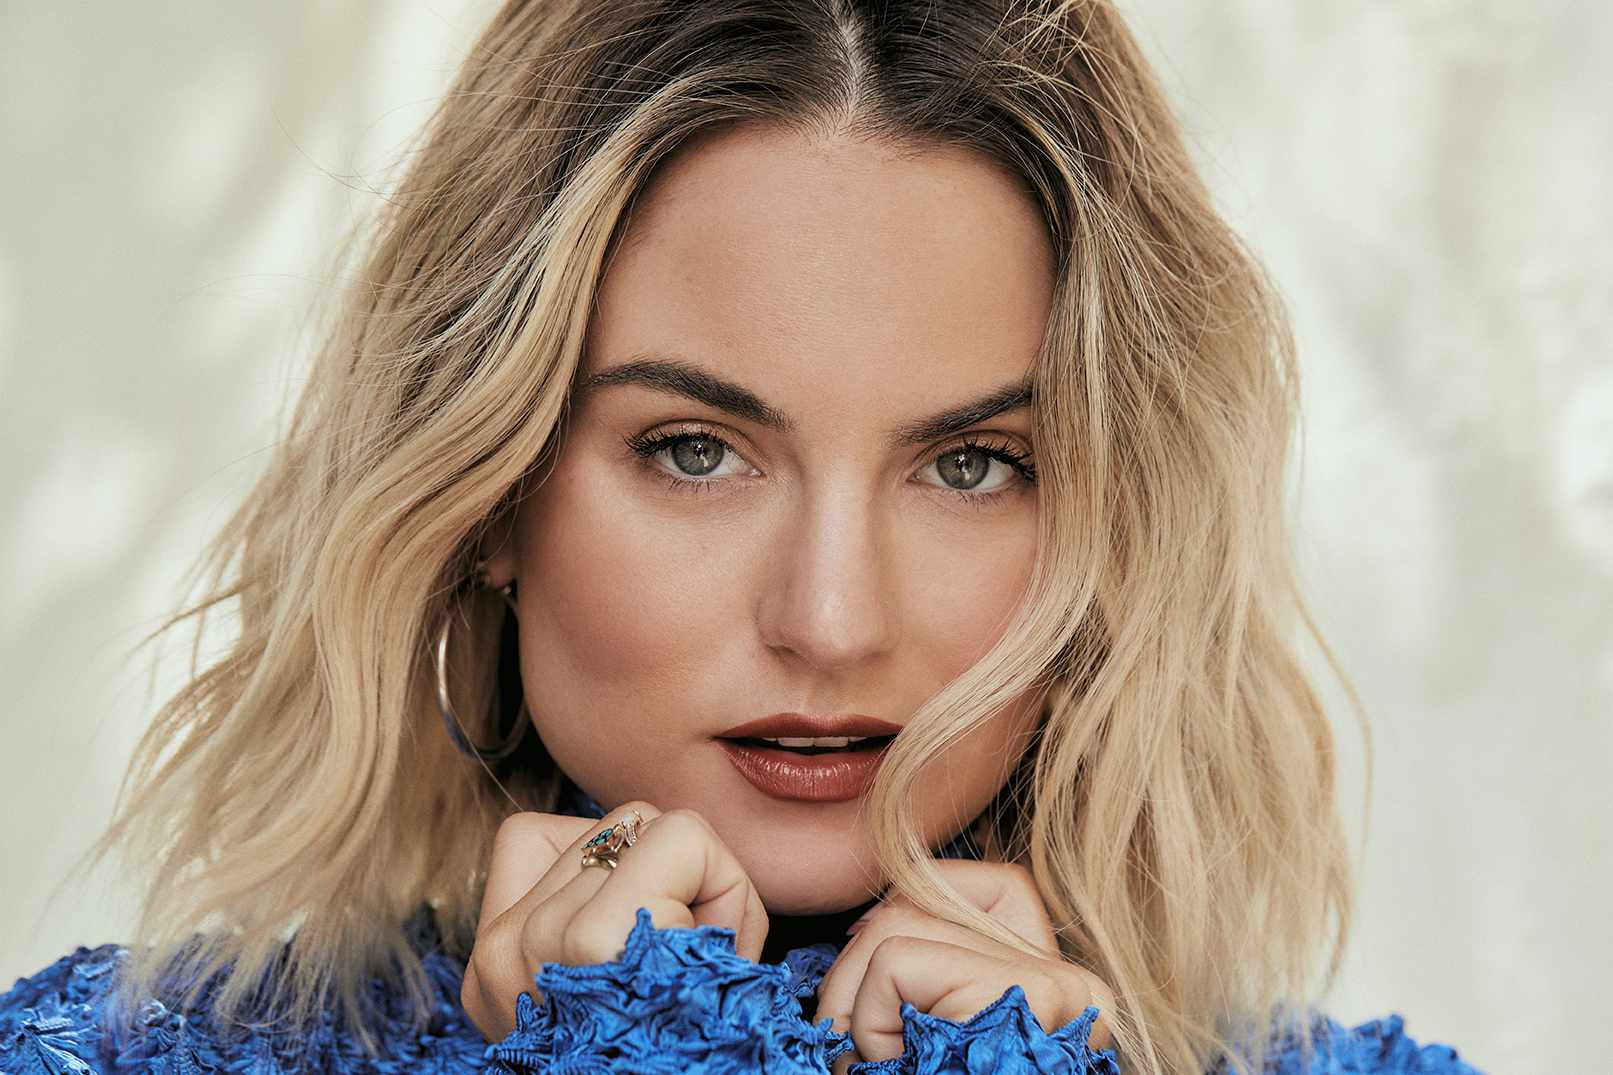 JoJo in blue top, hands clenched under her face